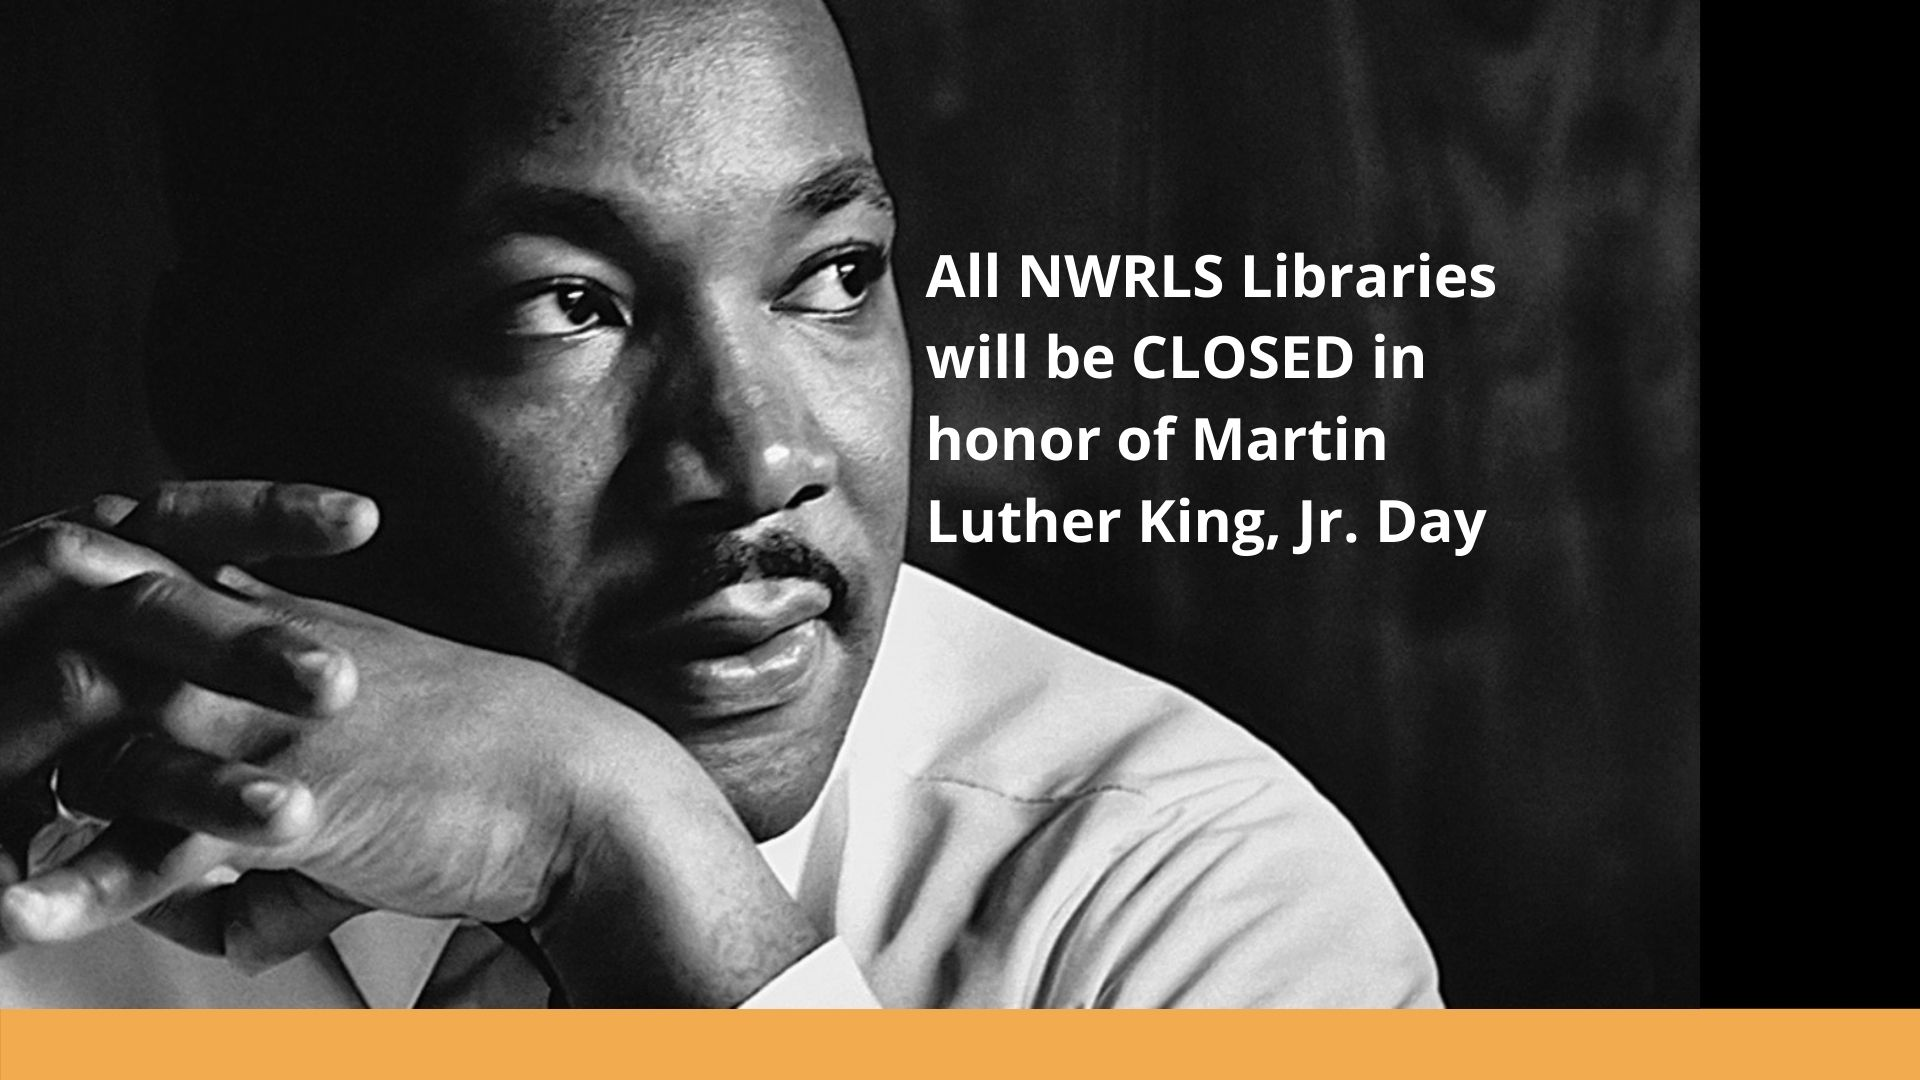 All NWRLS Libraries will be closed in honor of Martin Luther King Jr. Day